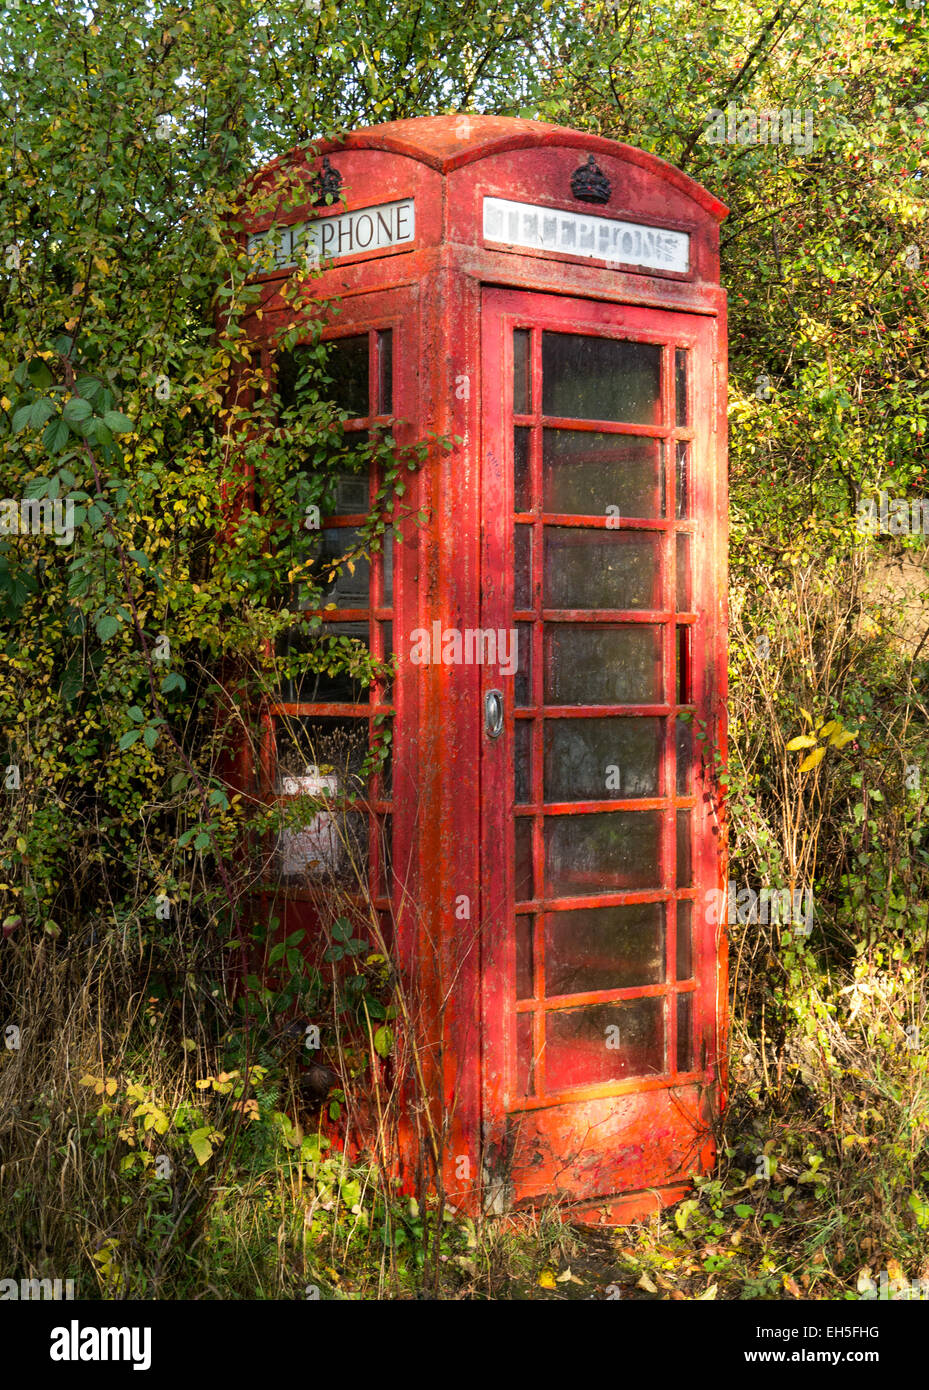 Dilapidated old telephone kiosk partly overgrown by a hedge. - Stock Image